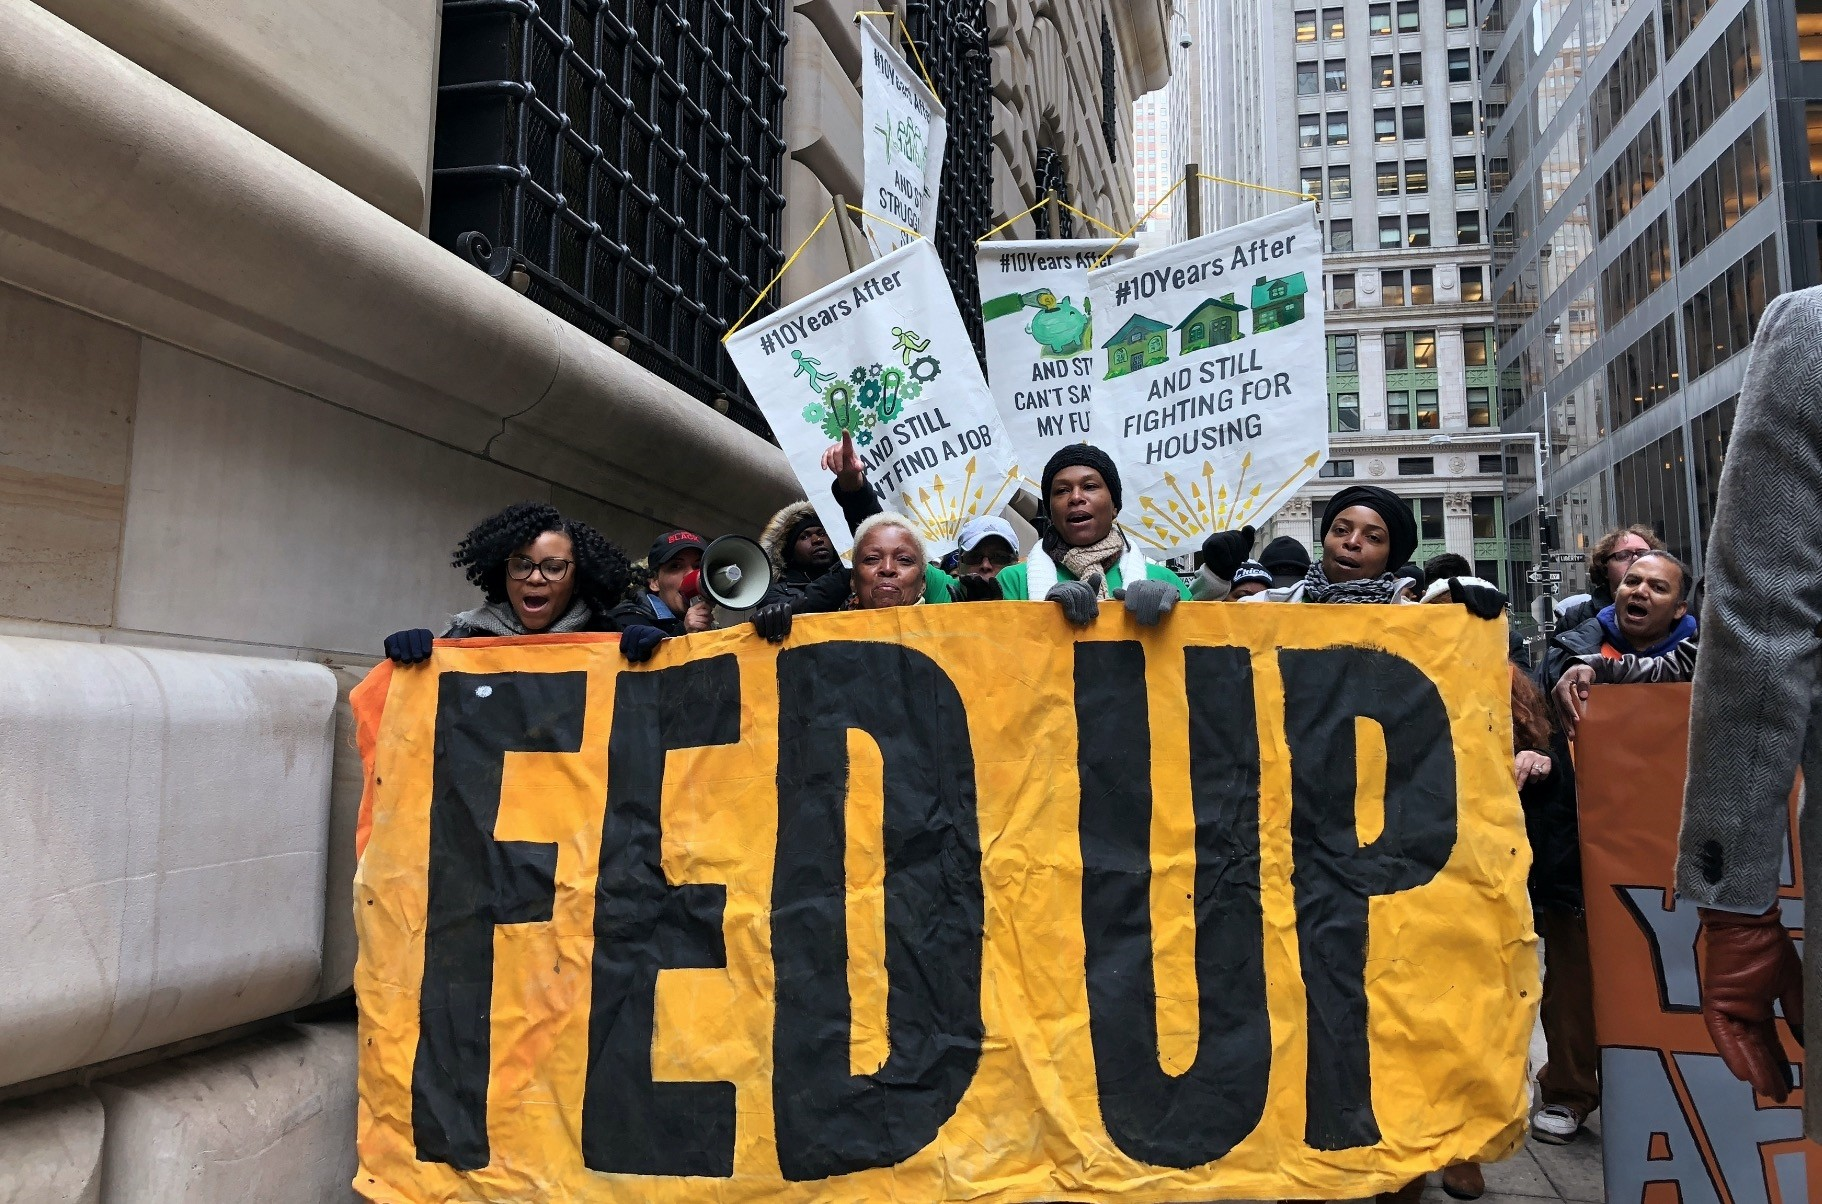 Community and labor activists led by the Fed Up coalition demonstrate and call for the selection of a Federal Reserve Bank of New York president independent from Wall Street, outside the Fed bank, New York.